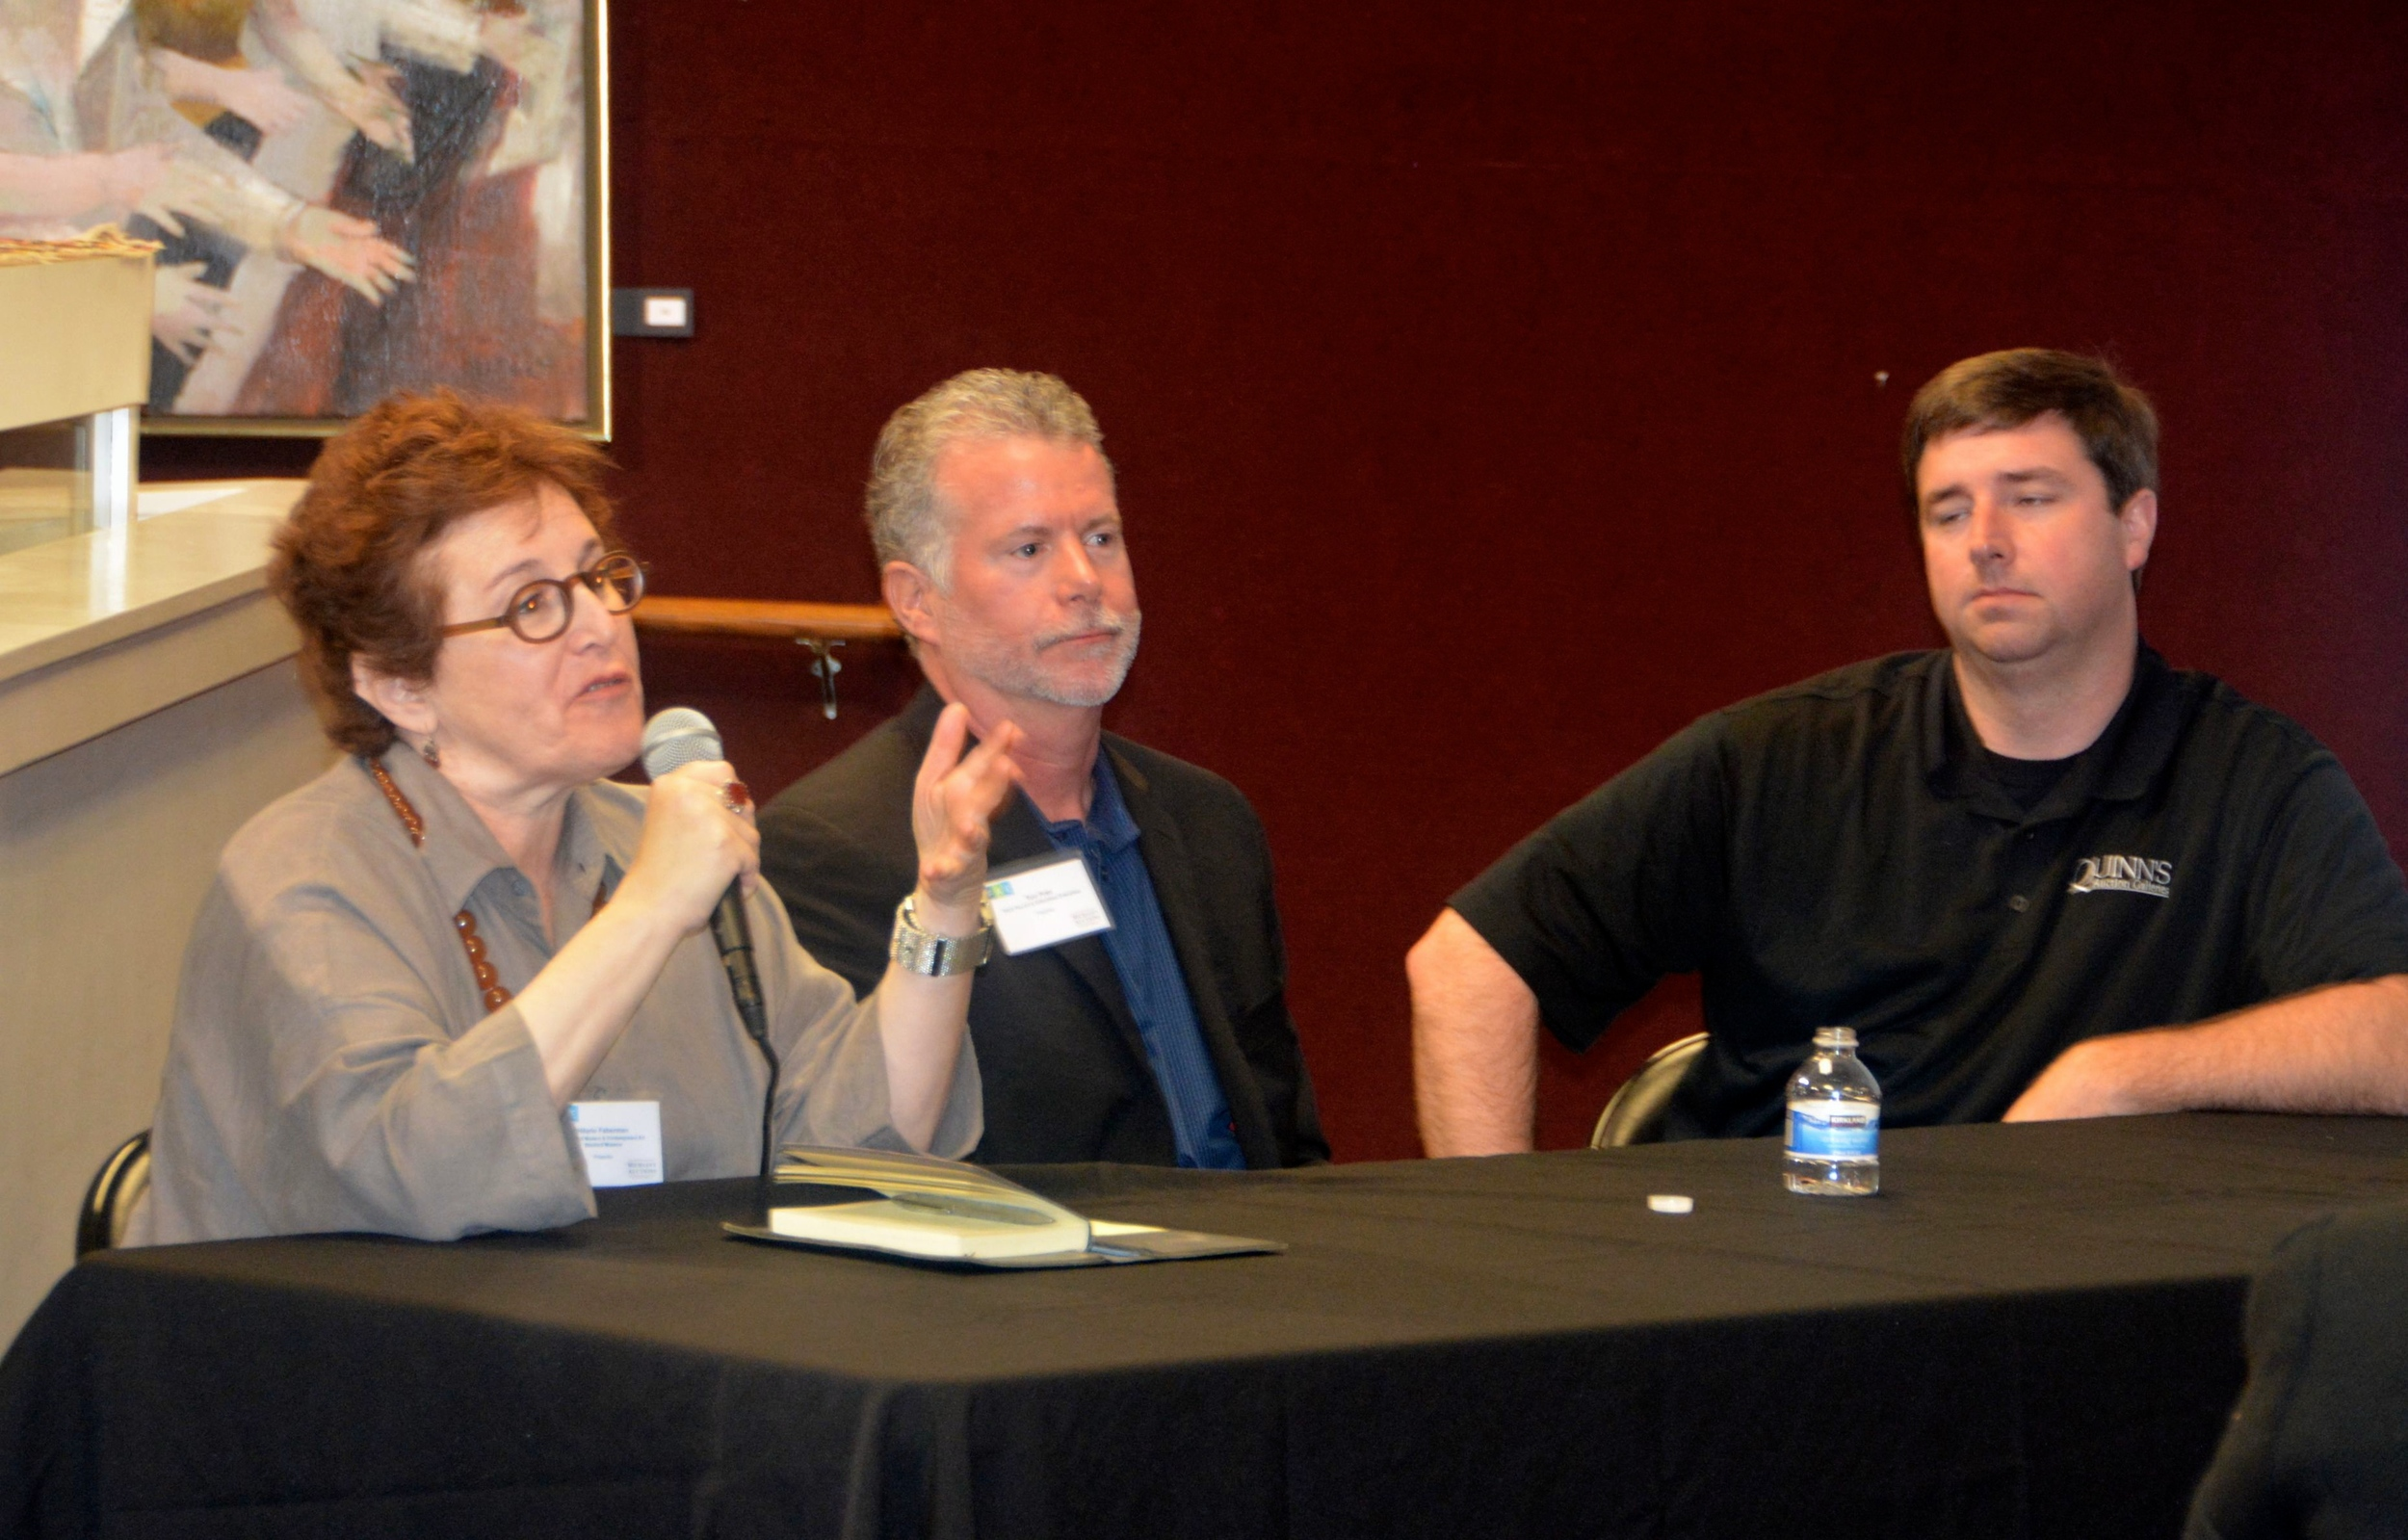 Panel with Hilarie Faberman, Tom Pratt and Matthew Quinn